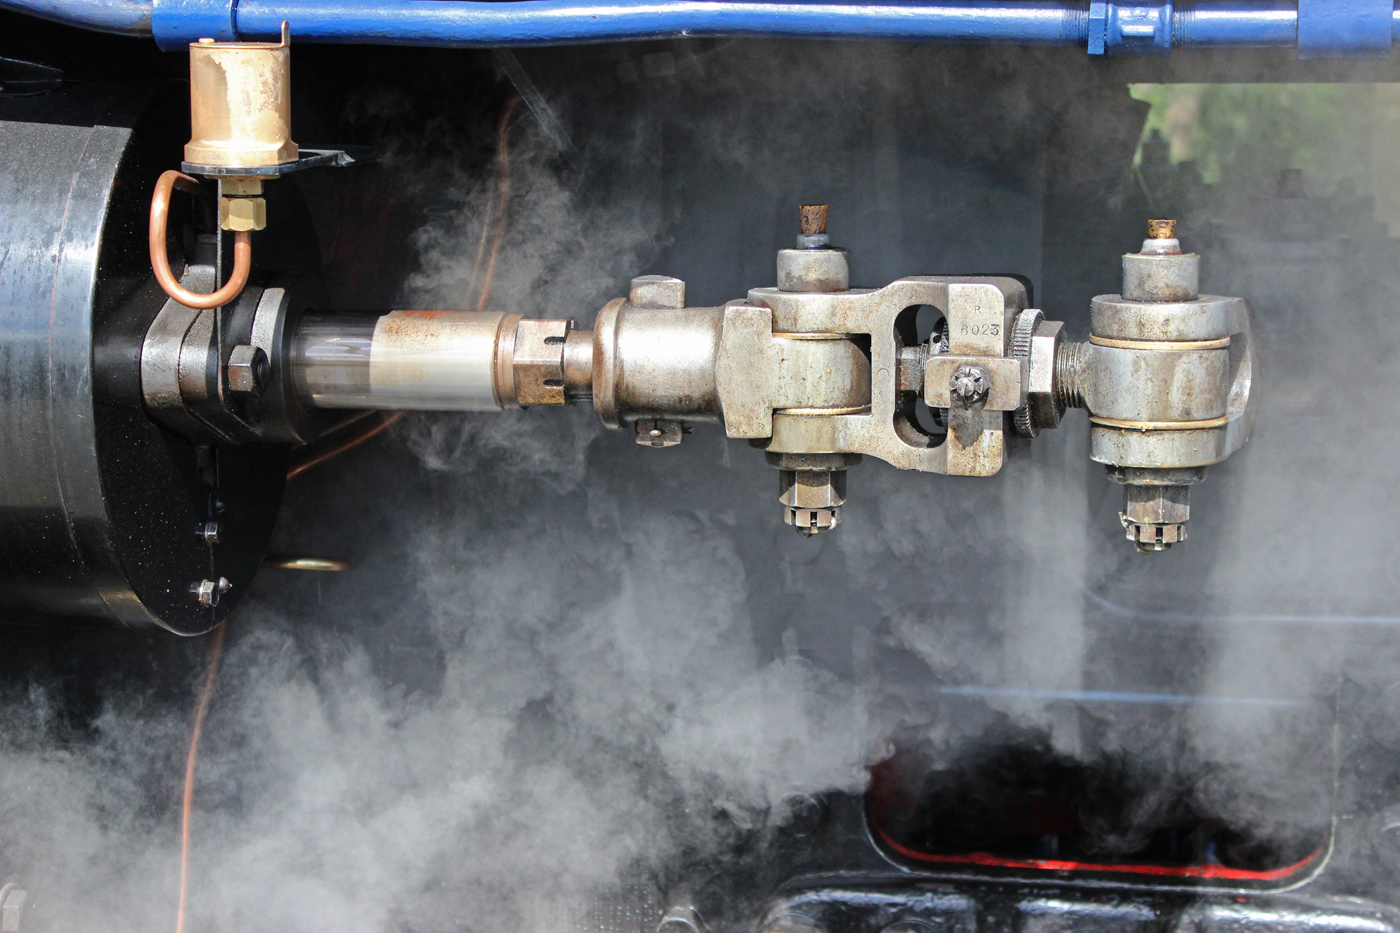 ENGINE DRIVEN BY STEAM by Sue Avey